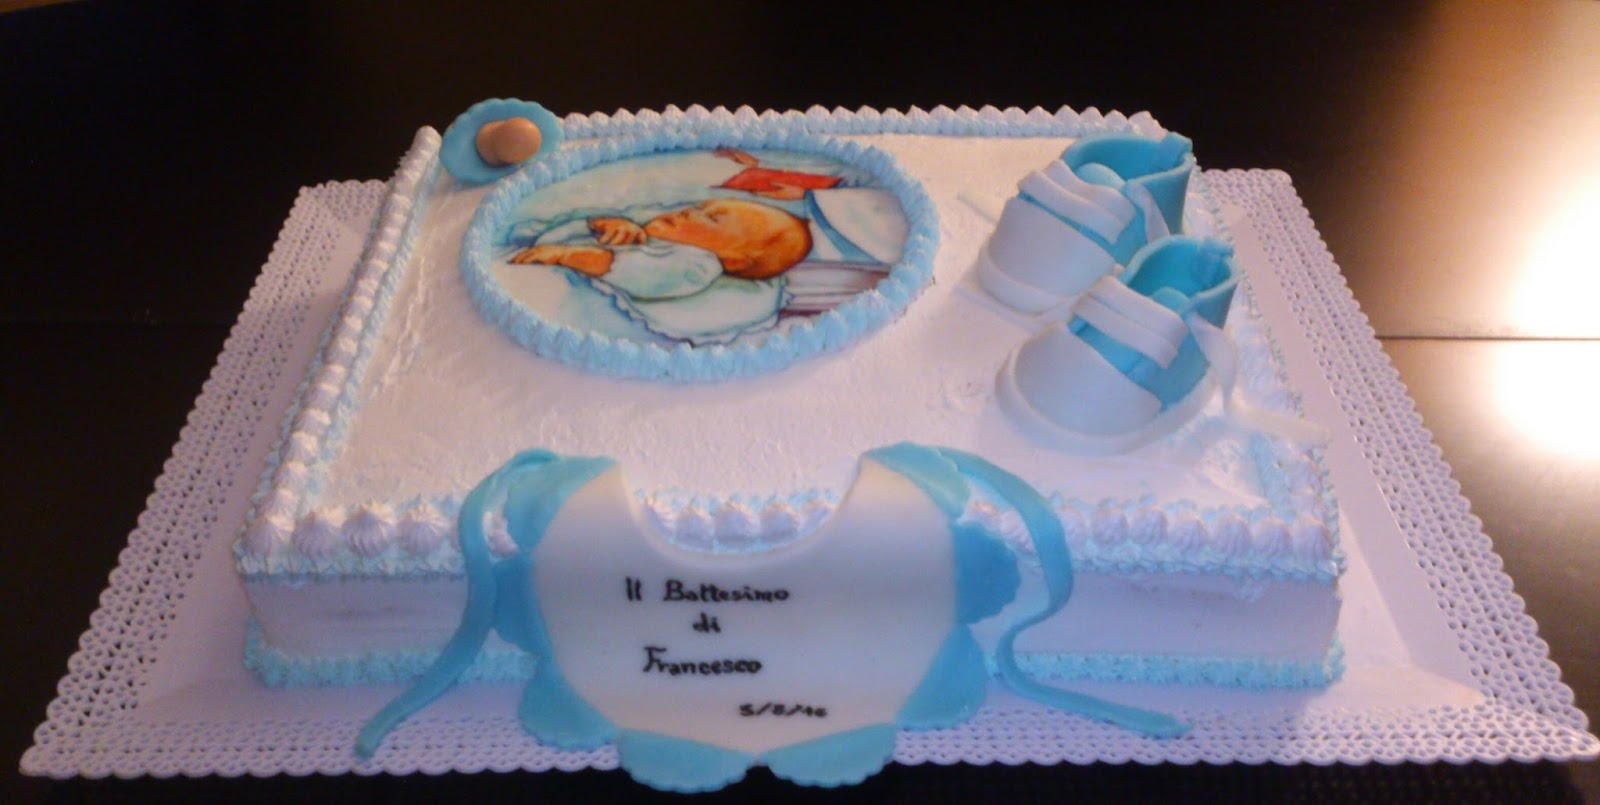 Decorazioni torte battesimo bimba nb03 regardsdefemmes - Decorazioni battesimo bimbo ...